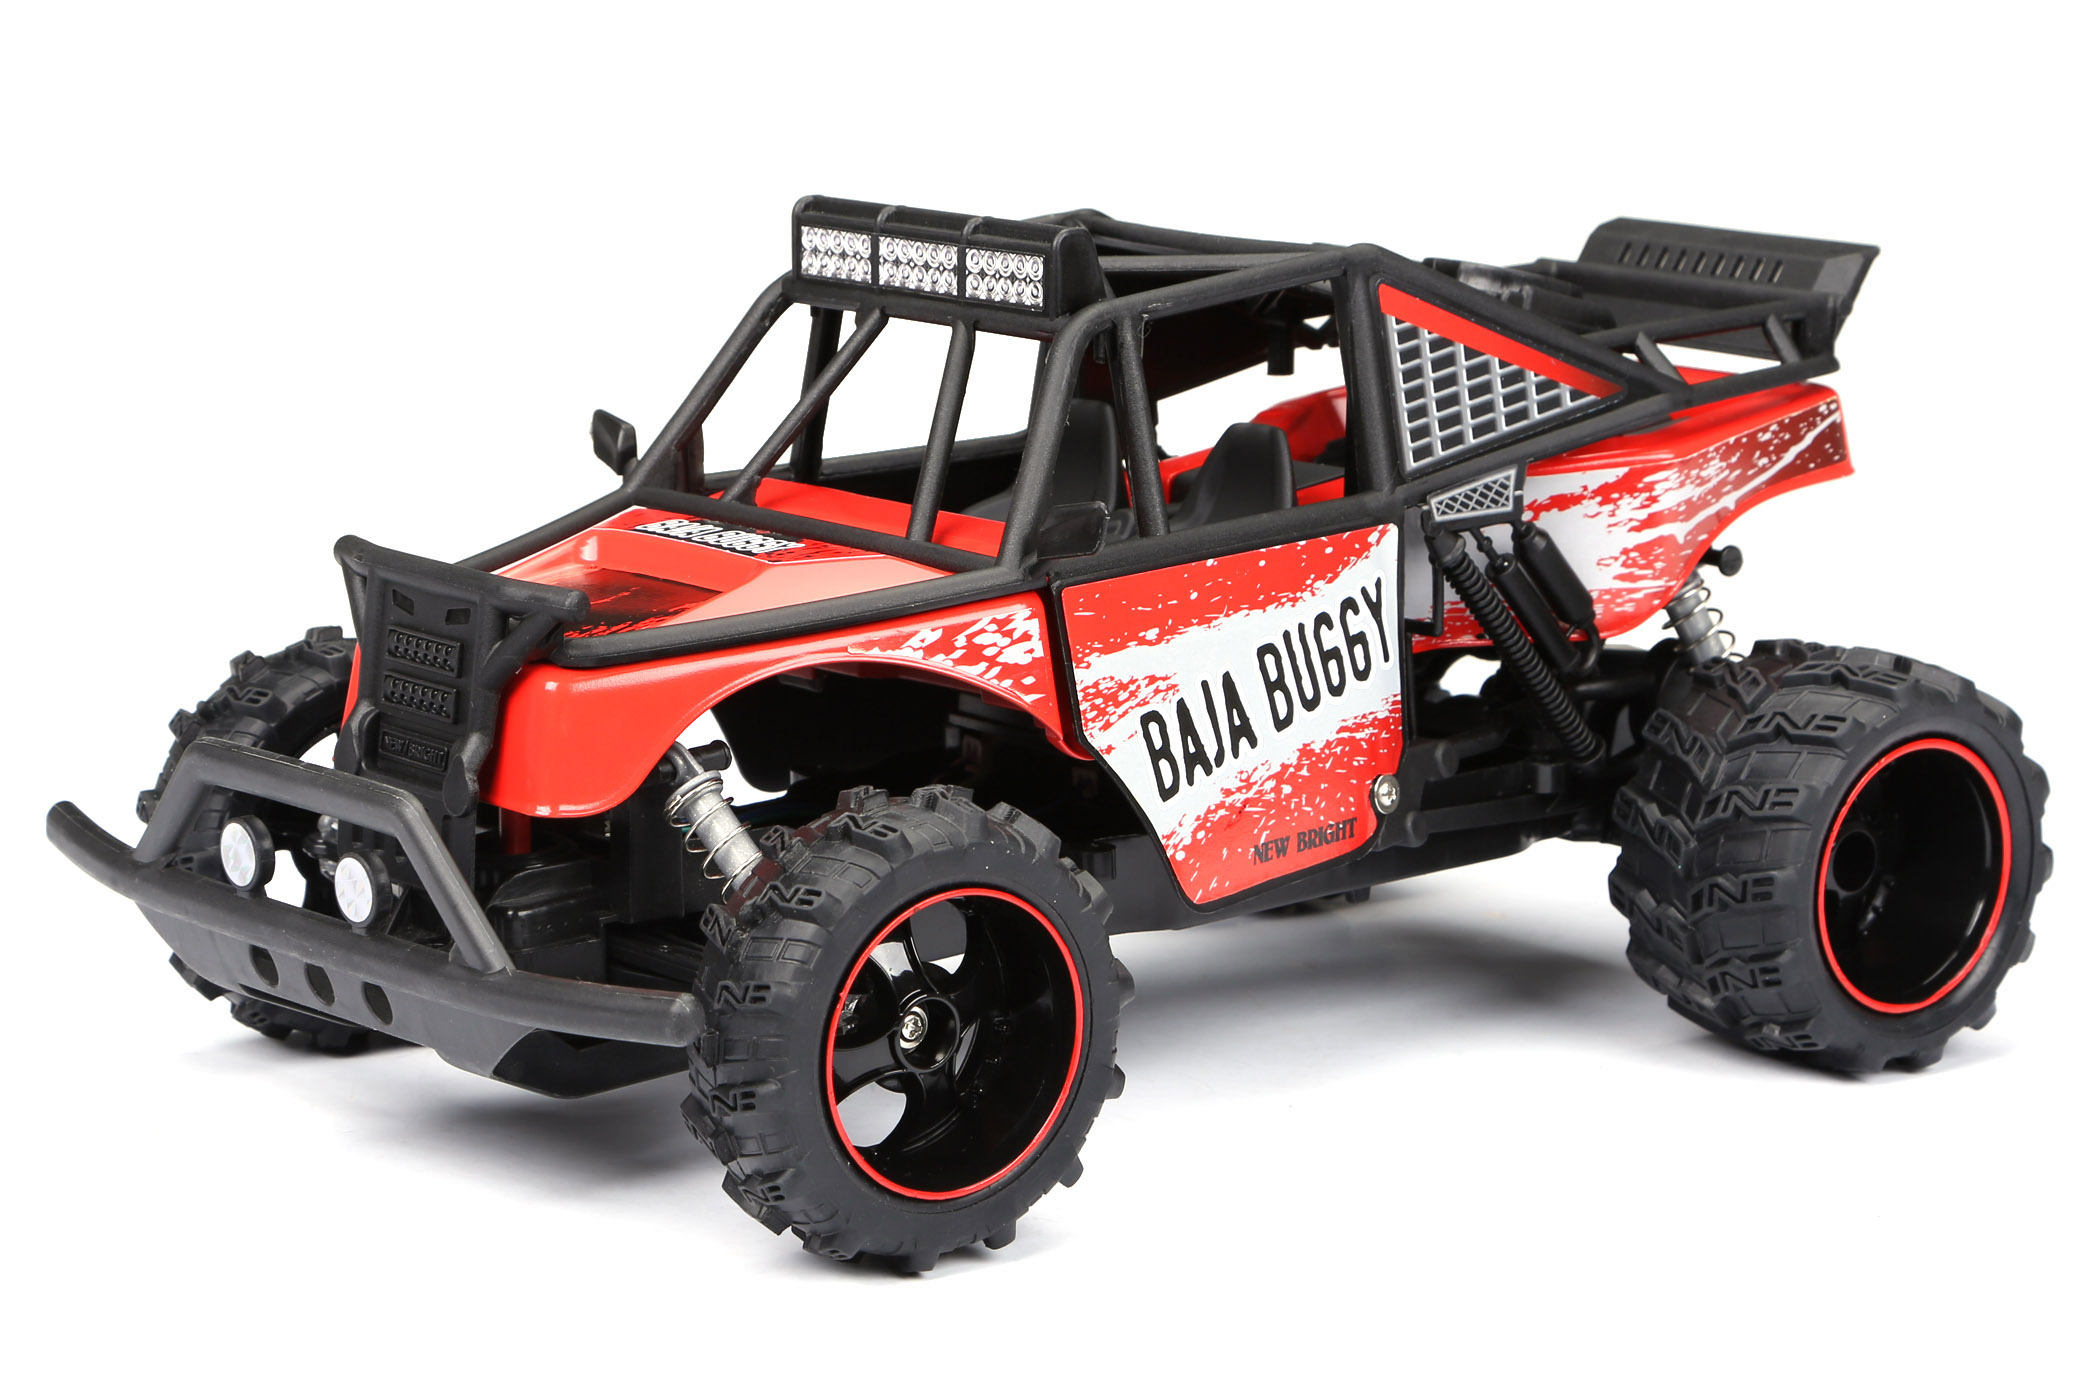 New Bright 1:14 RC Baja Buggy Growler – Red